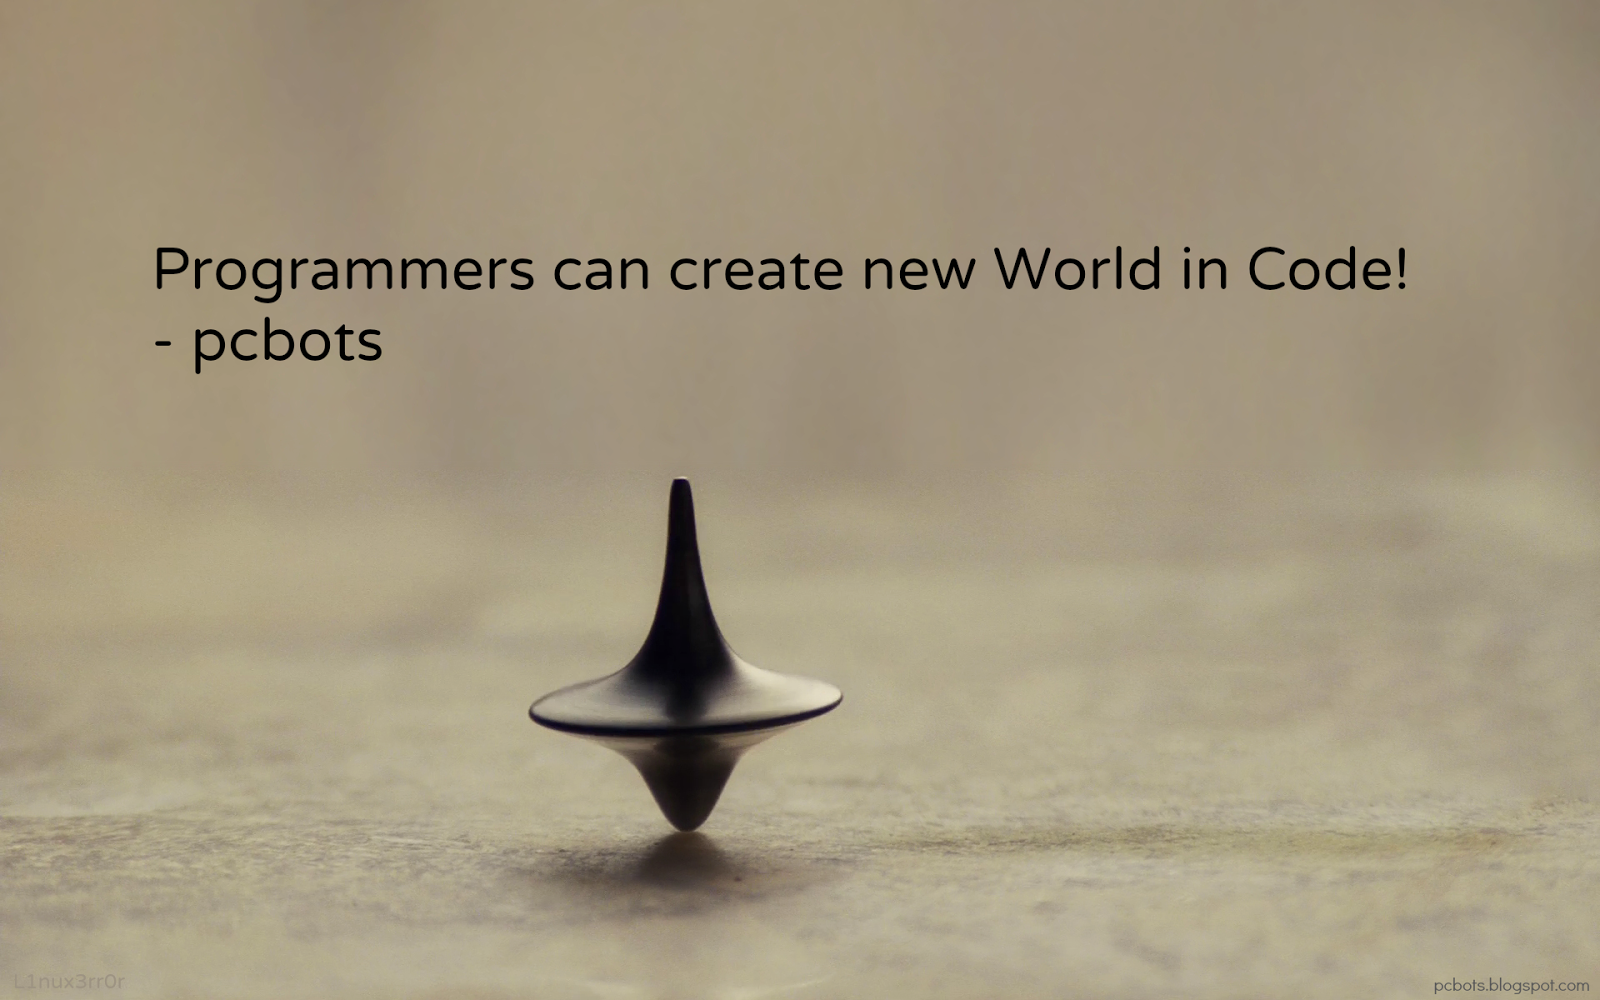 Programmers can create new world in code HD Programmers Wallpaper 1600x1000